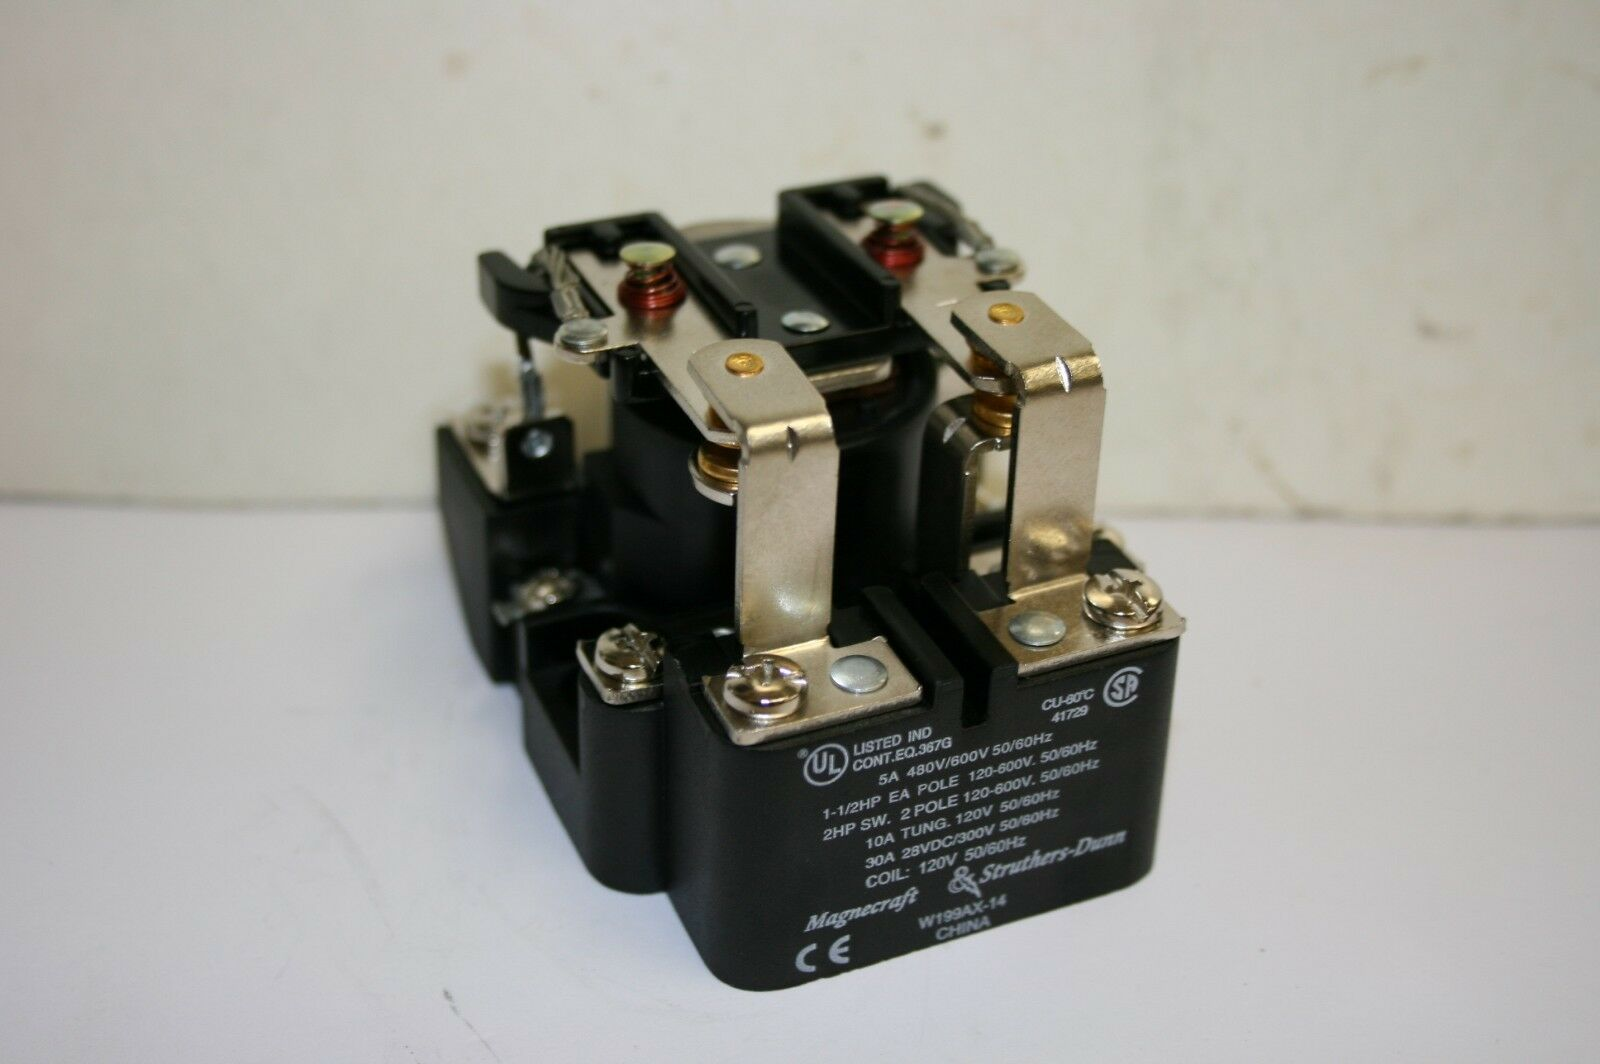 s l1600 30a dpdt relay ebay magnecraft relay wiring diagram at webbmarketing.co